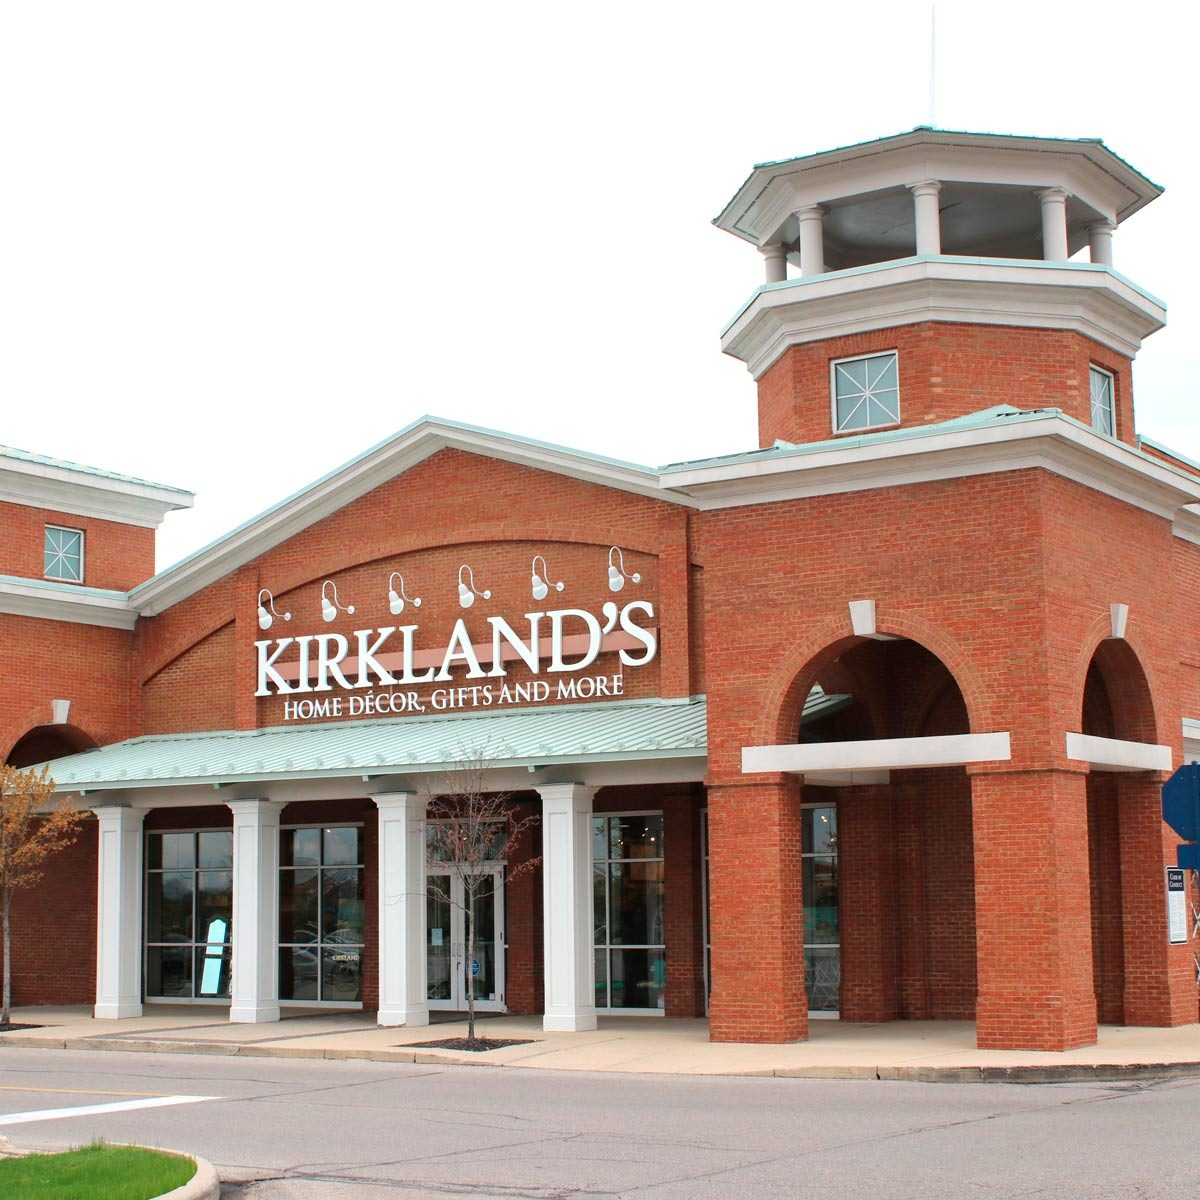 Does Costco Own Kirkland's Home Decor Stores? | Family ... on Kirkland's Home Decor id=82878